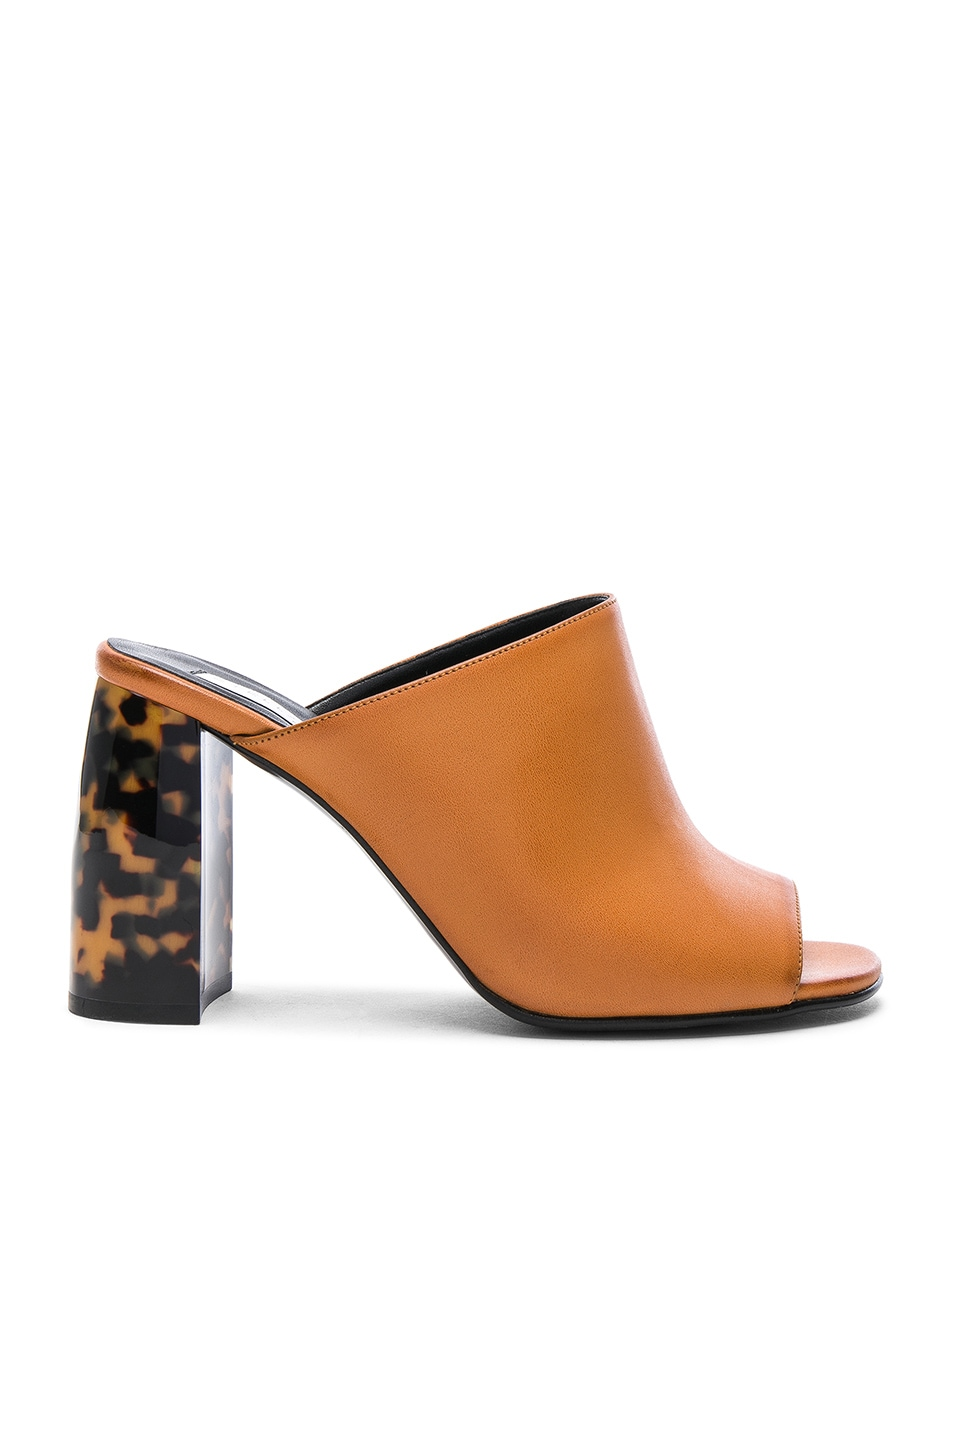 Image 1 of Stella McCartney Mules in Biscuit